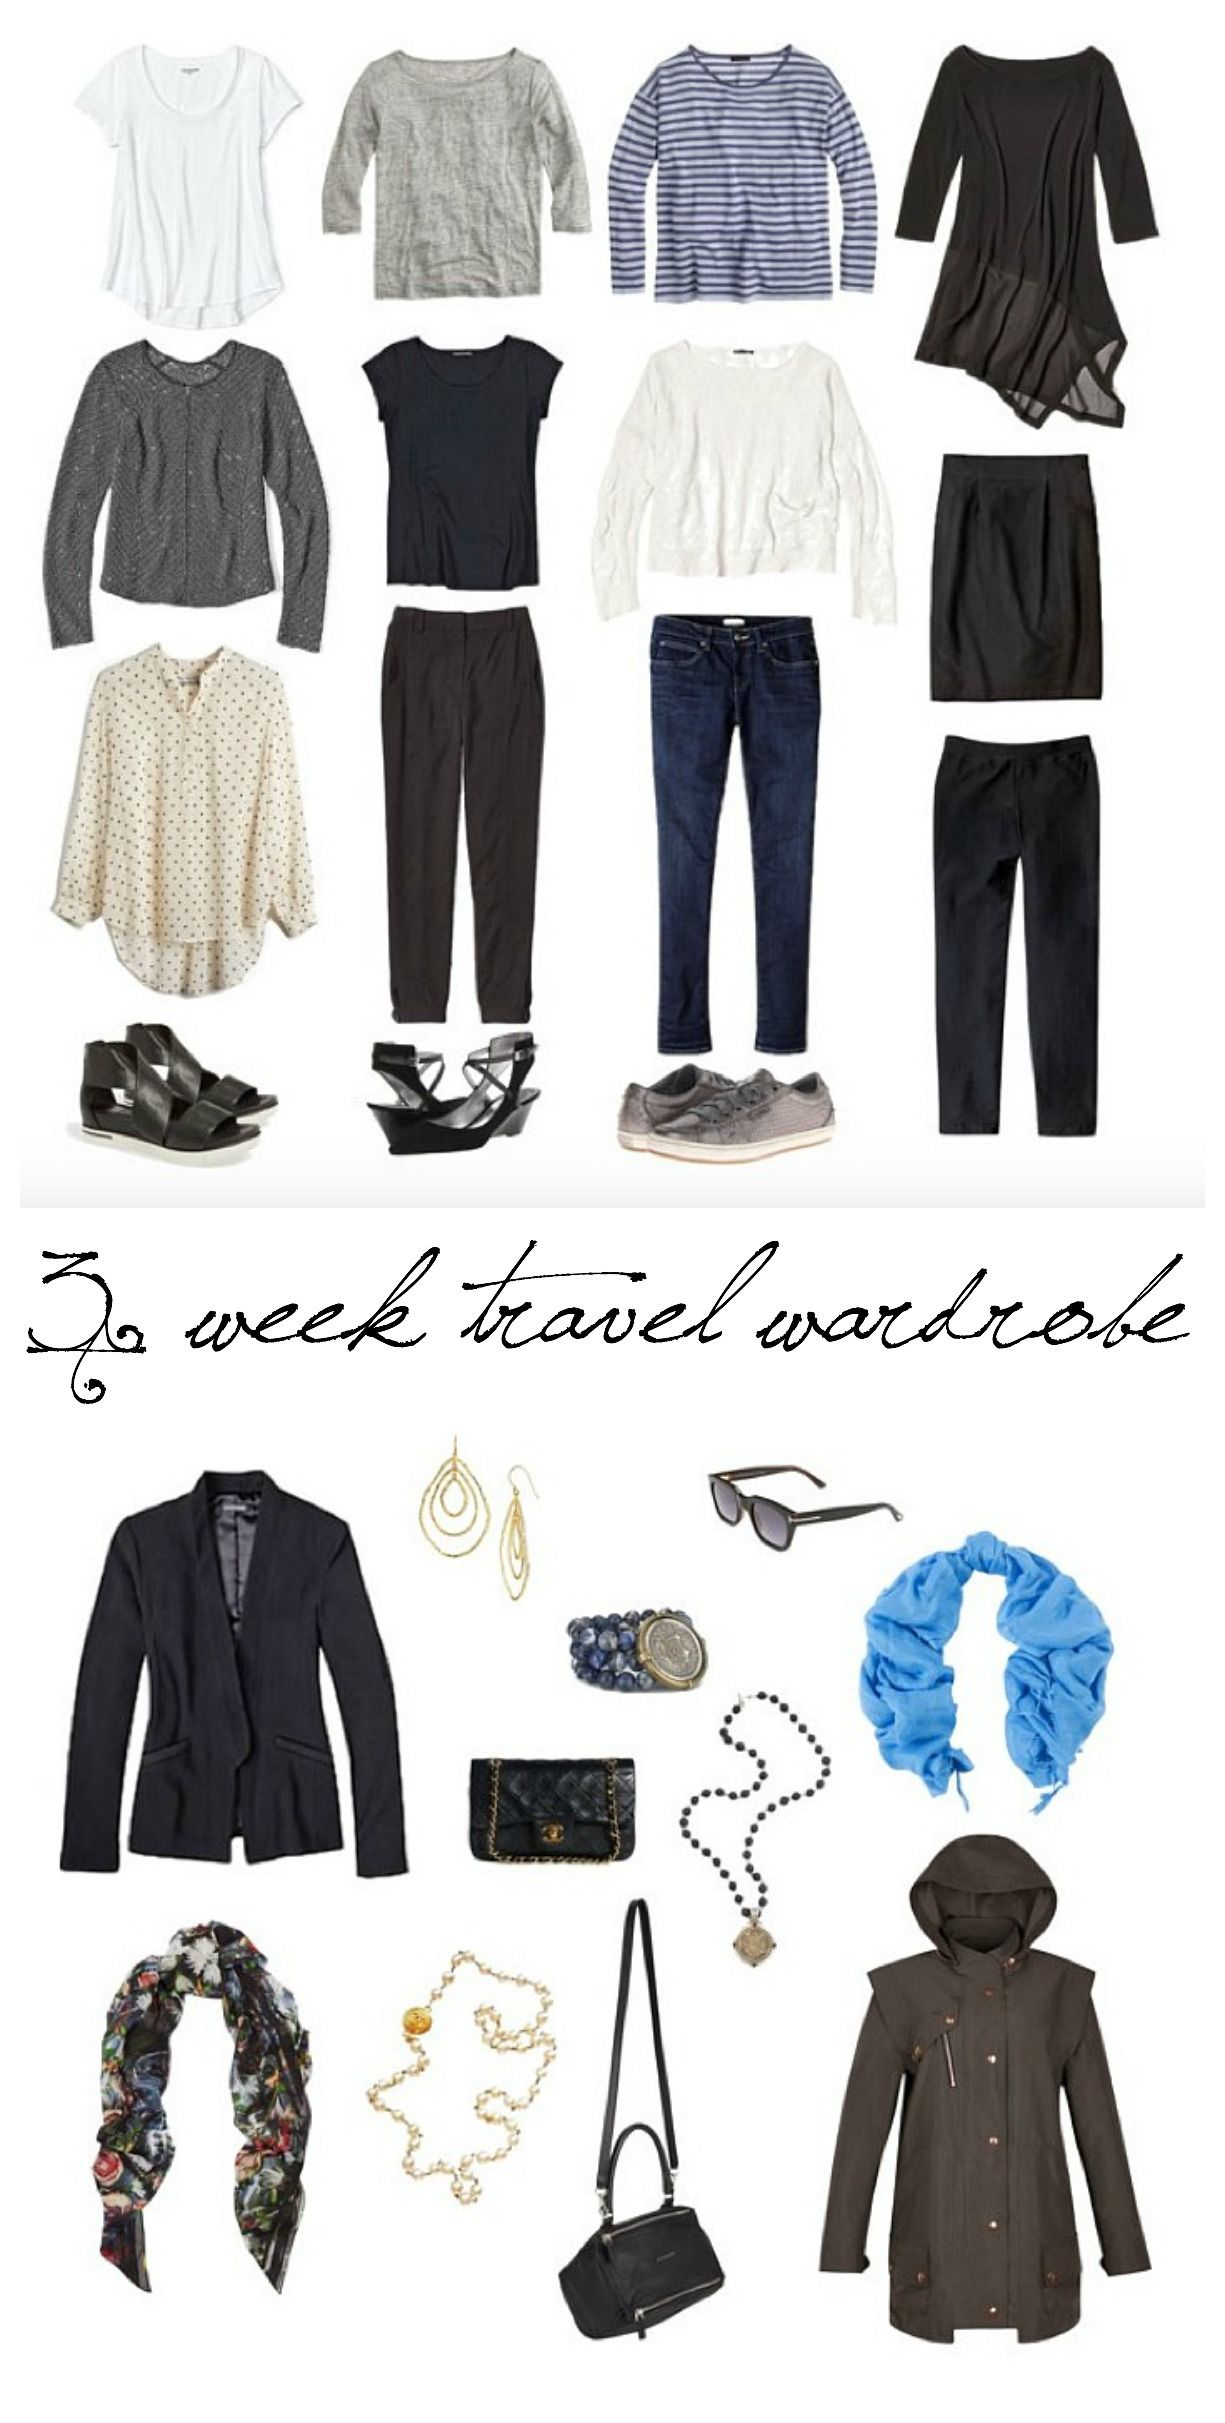 Travel Wardrobe Planning For 3 Weeks In Europe | Packing ...